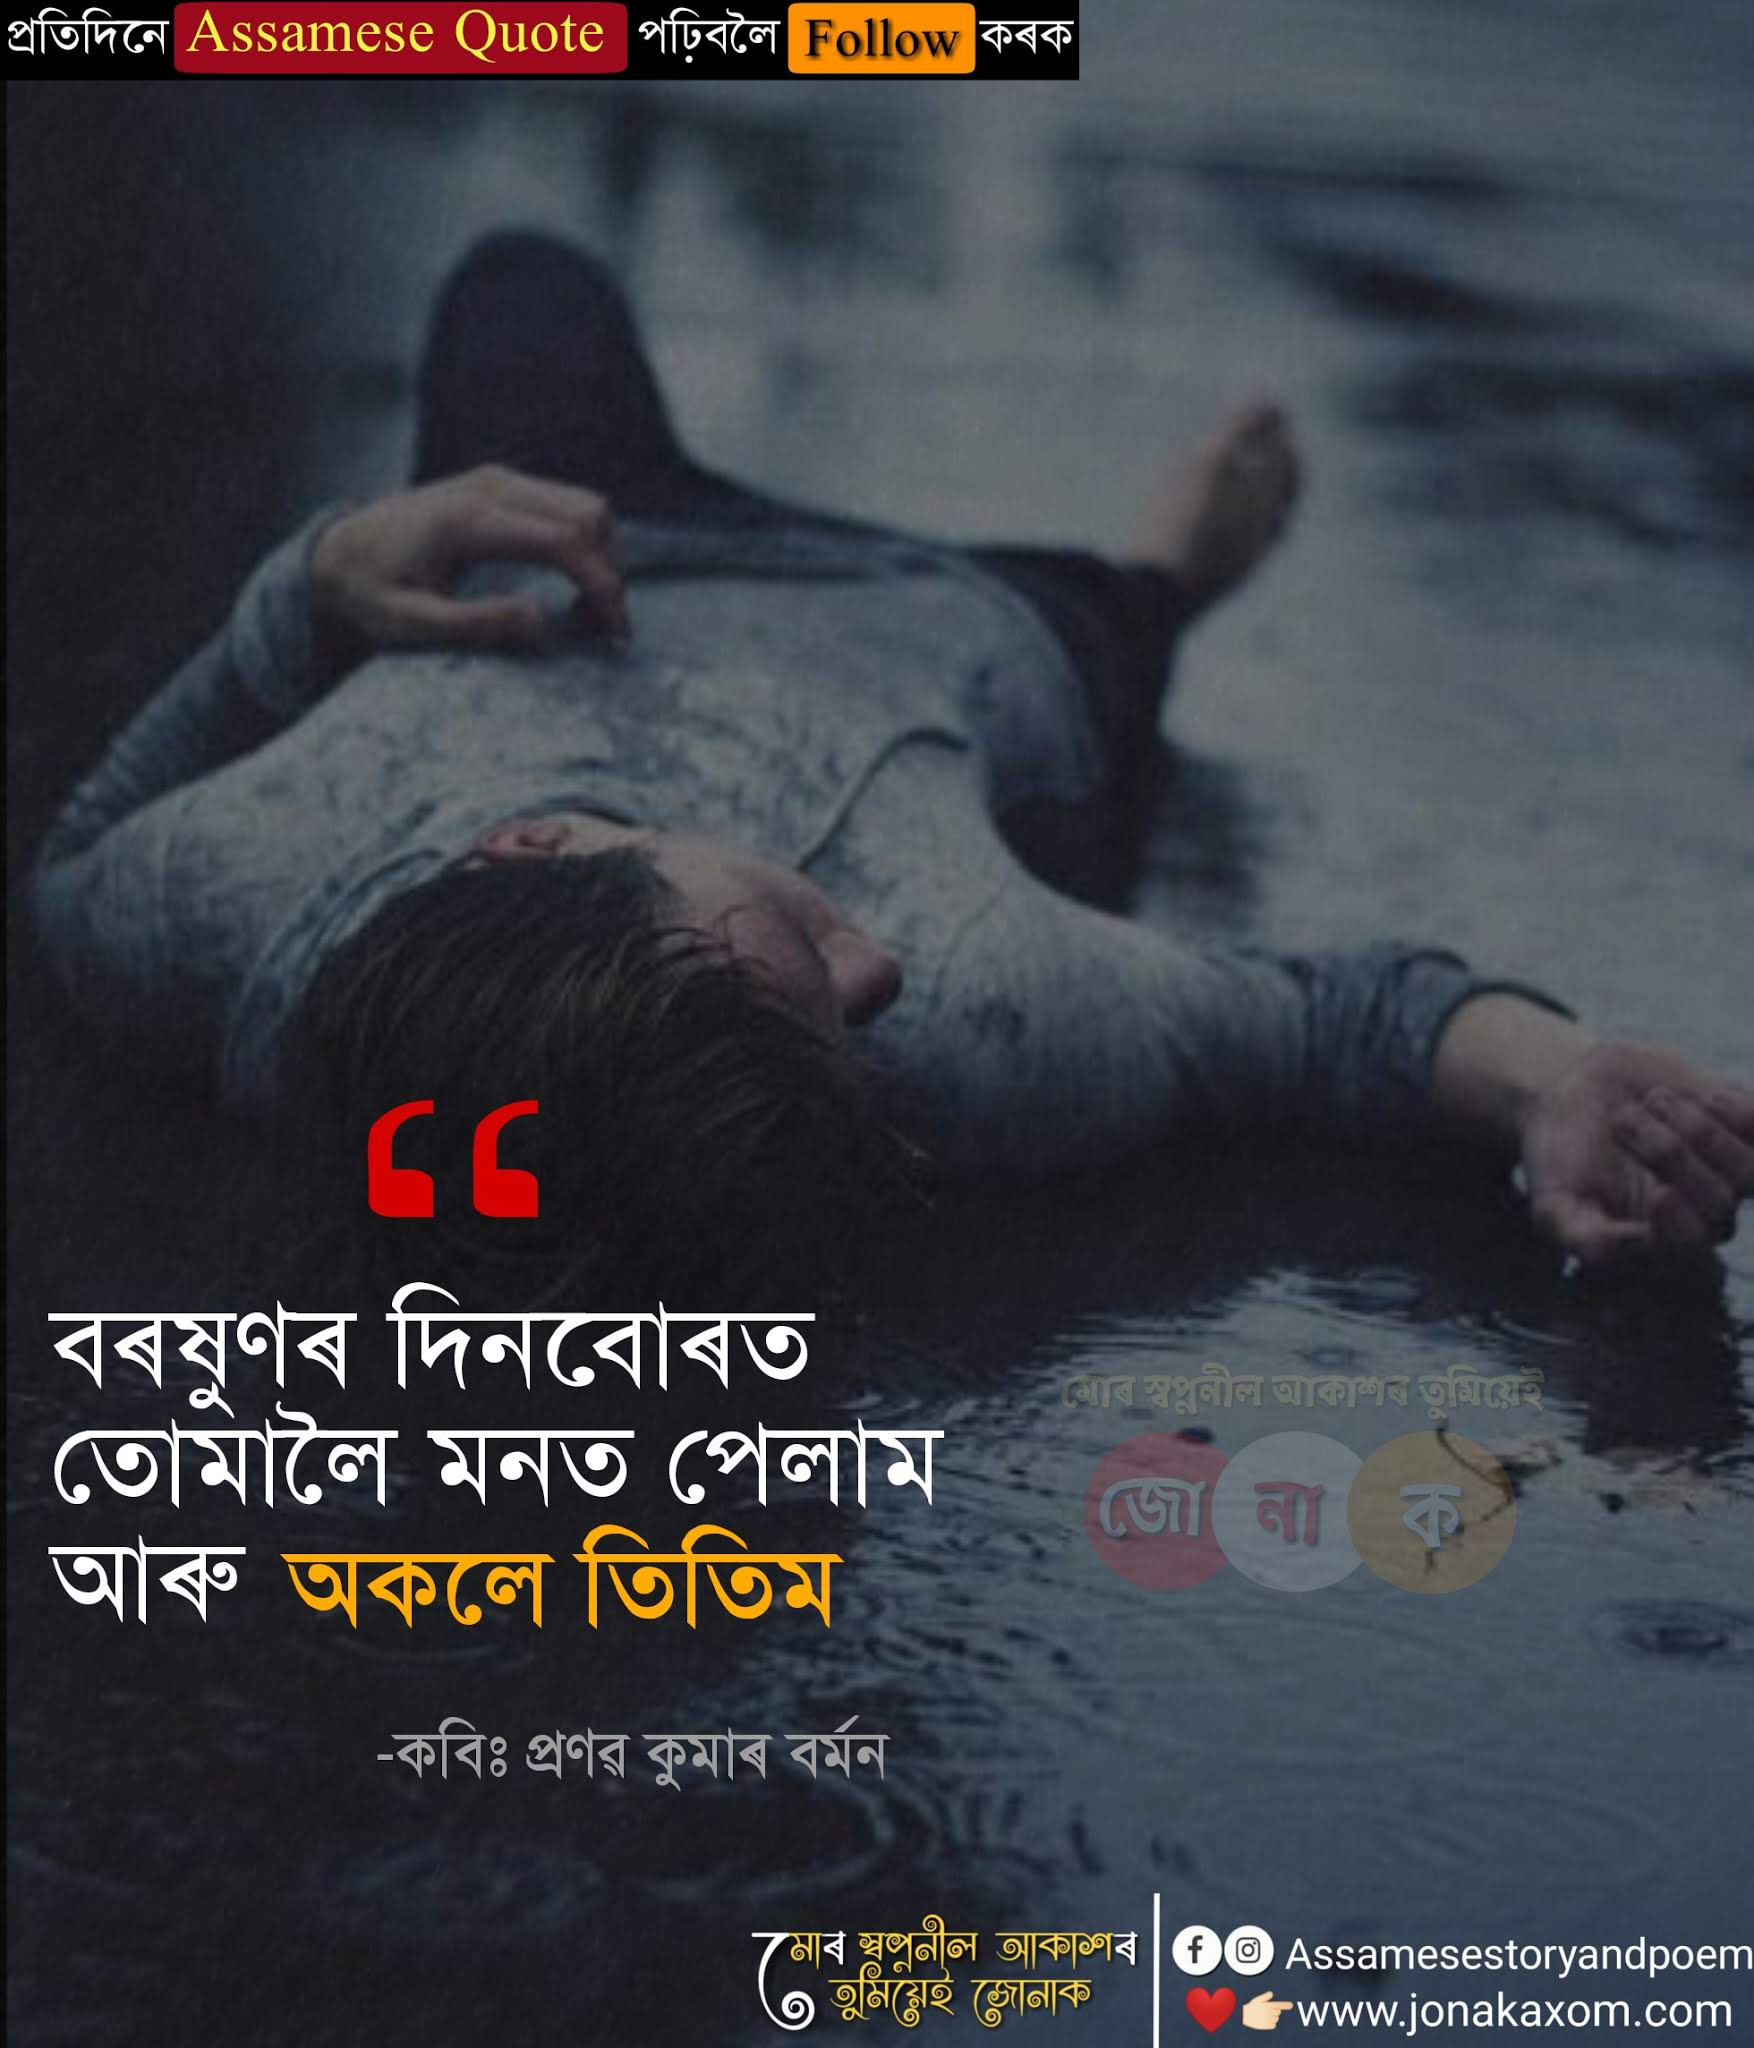 best assamese sad quotes | Assamese quotes for whatsapp